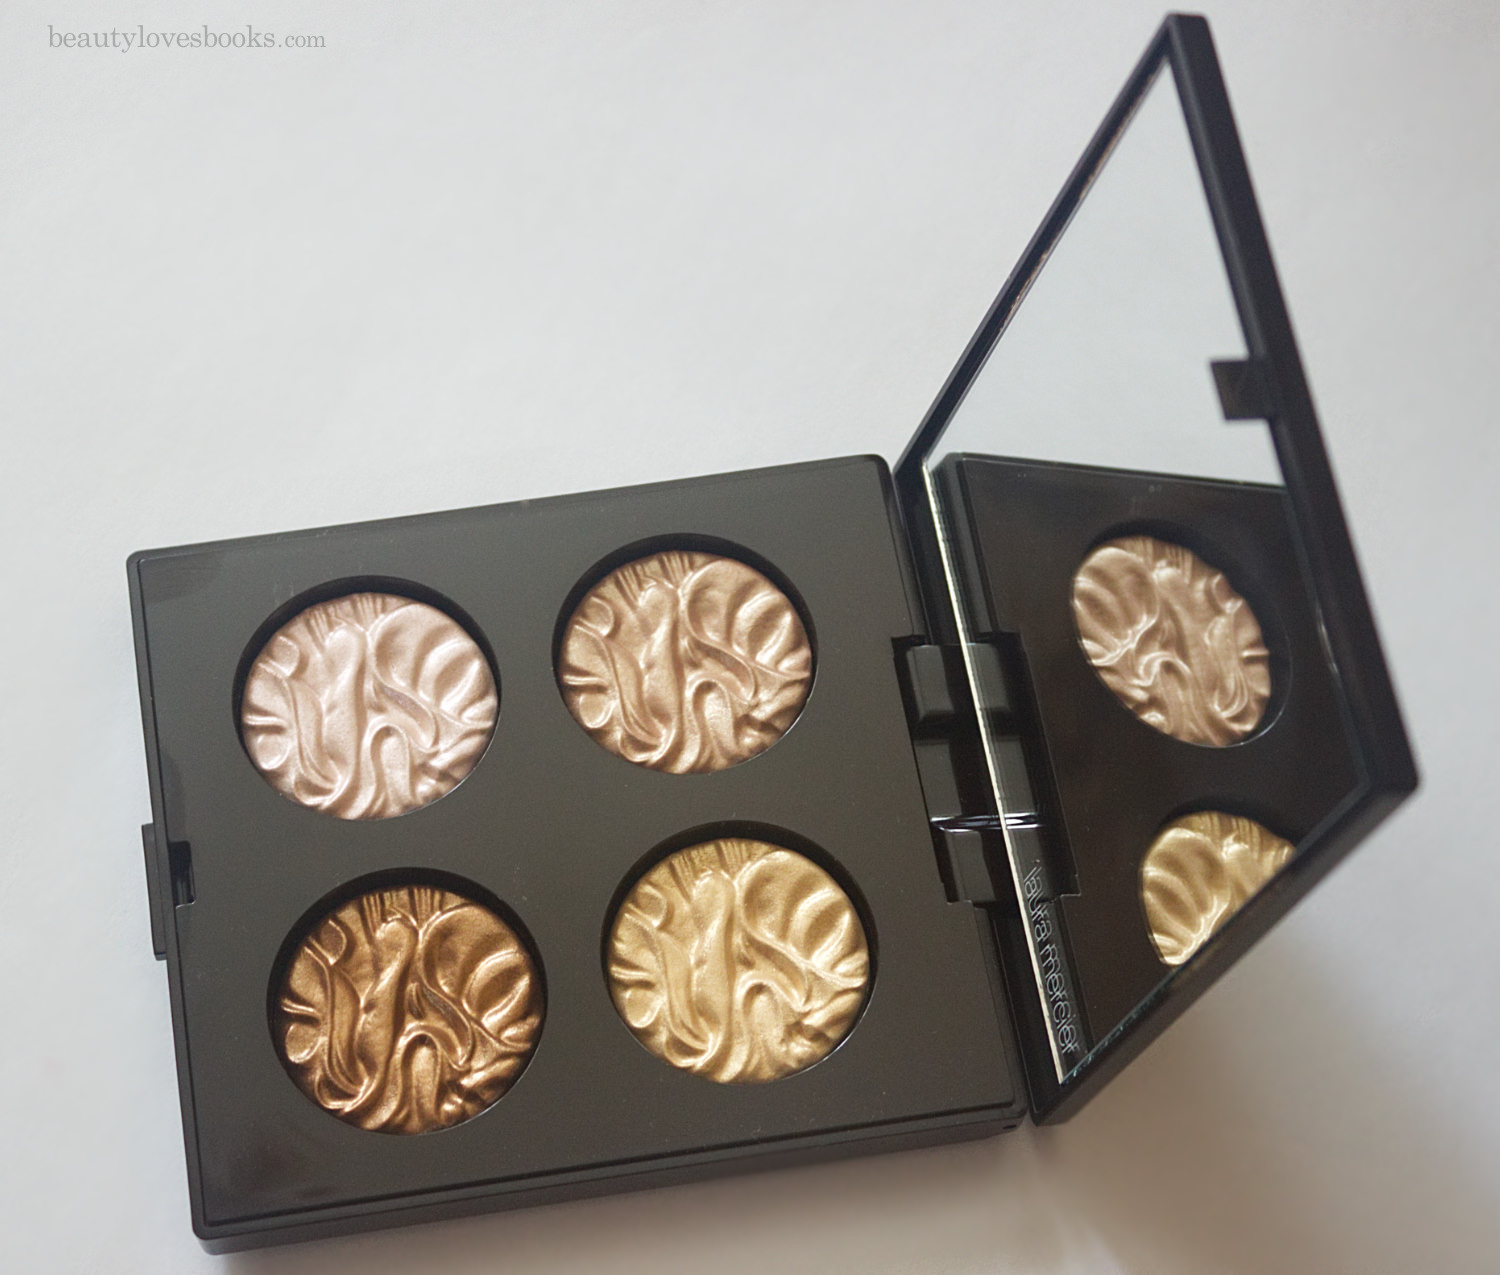 Laura Mercier Fall In Love Face Illuminator collection holiday 2016